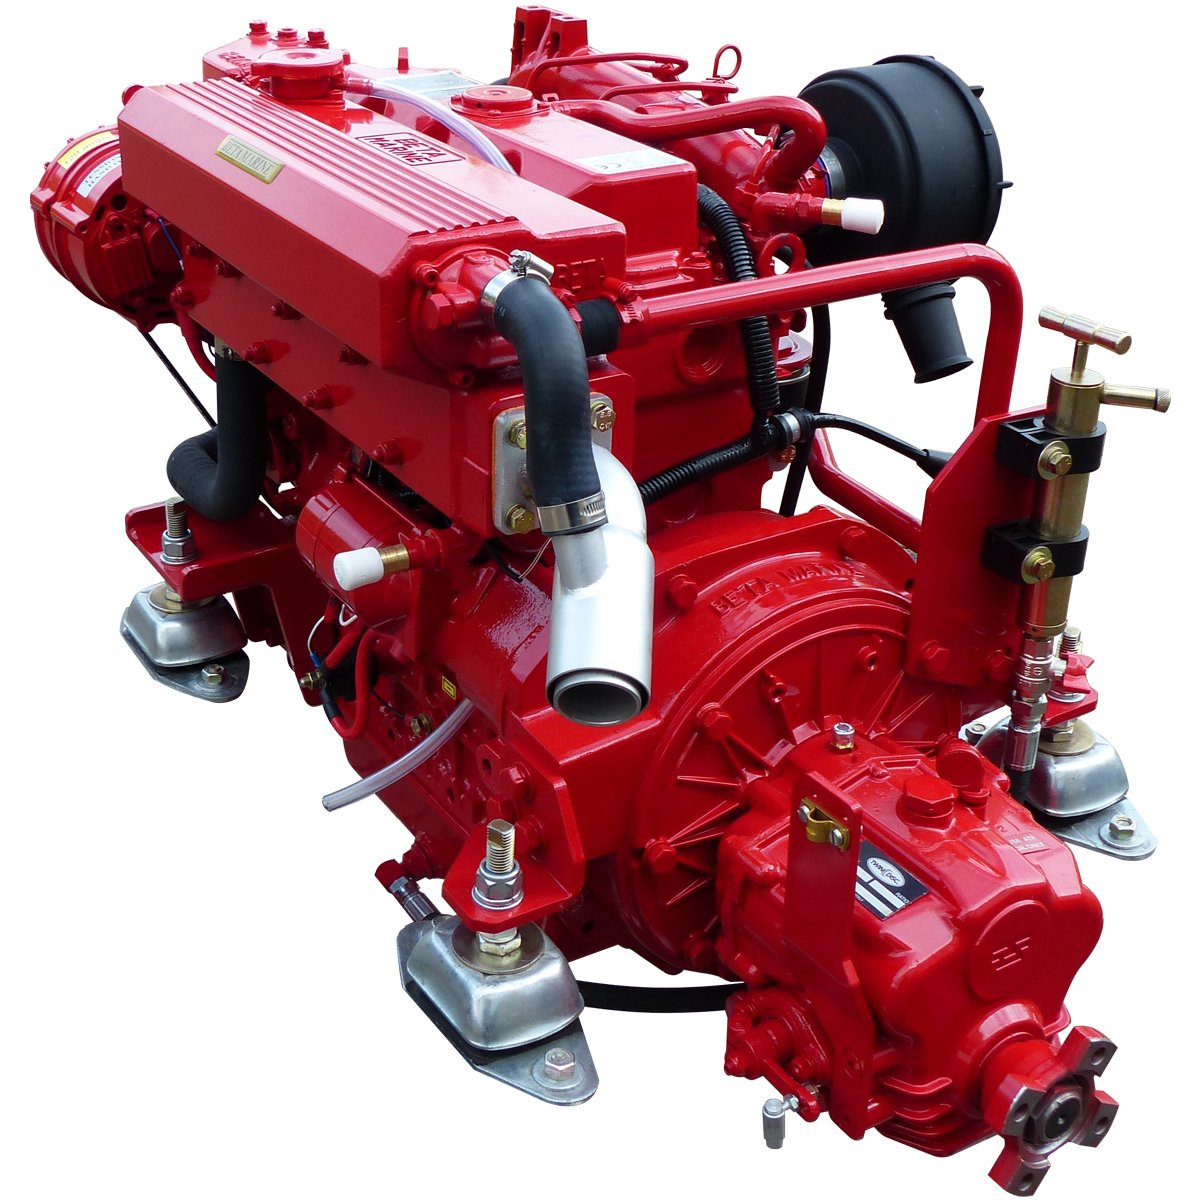 Beta Marine USA - marine diesel propulsion engines - Beta 50 heat exchanger engine